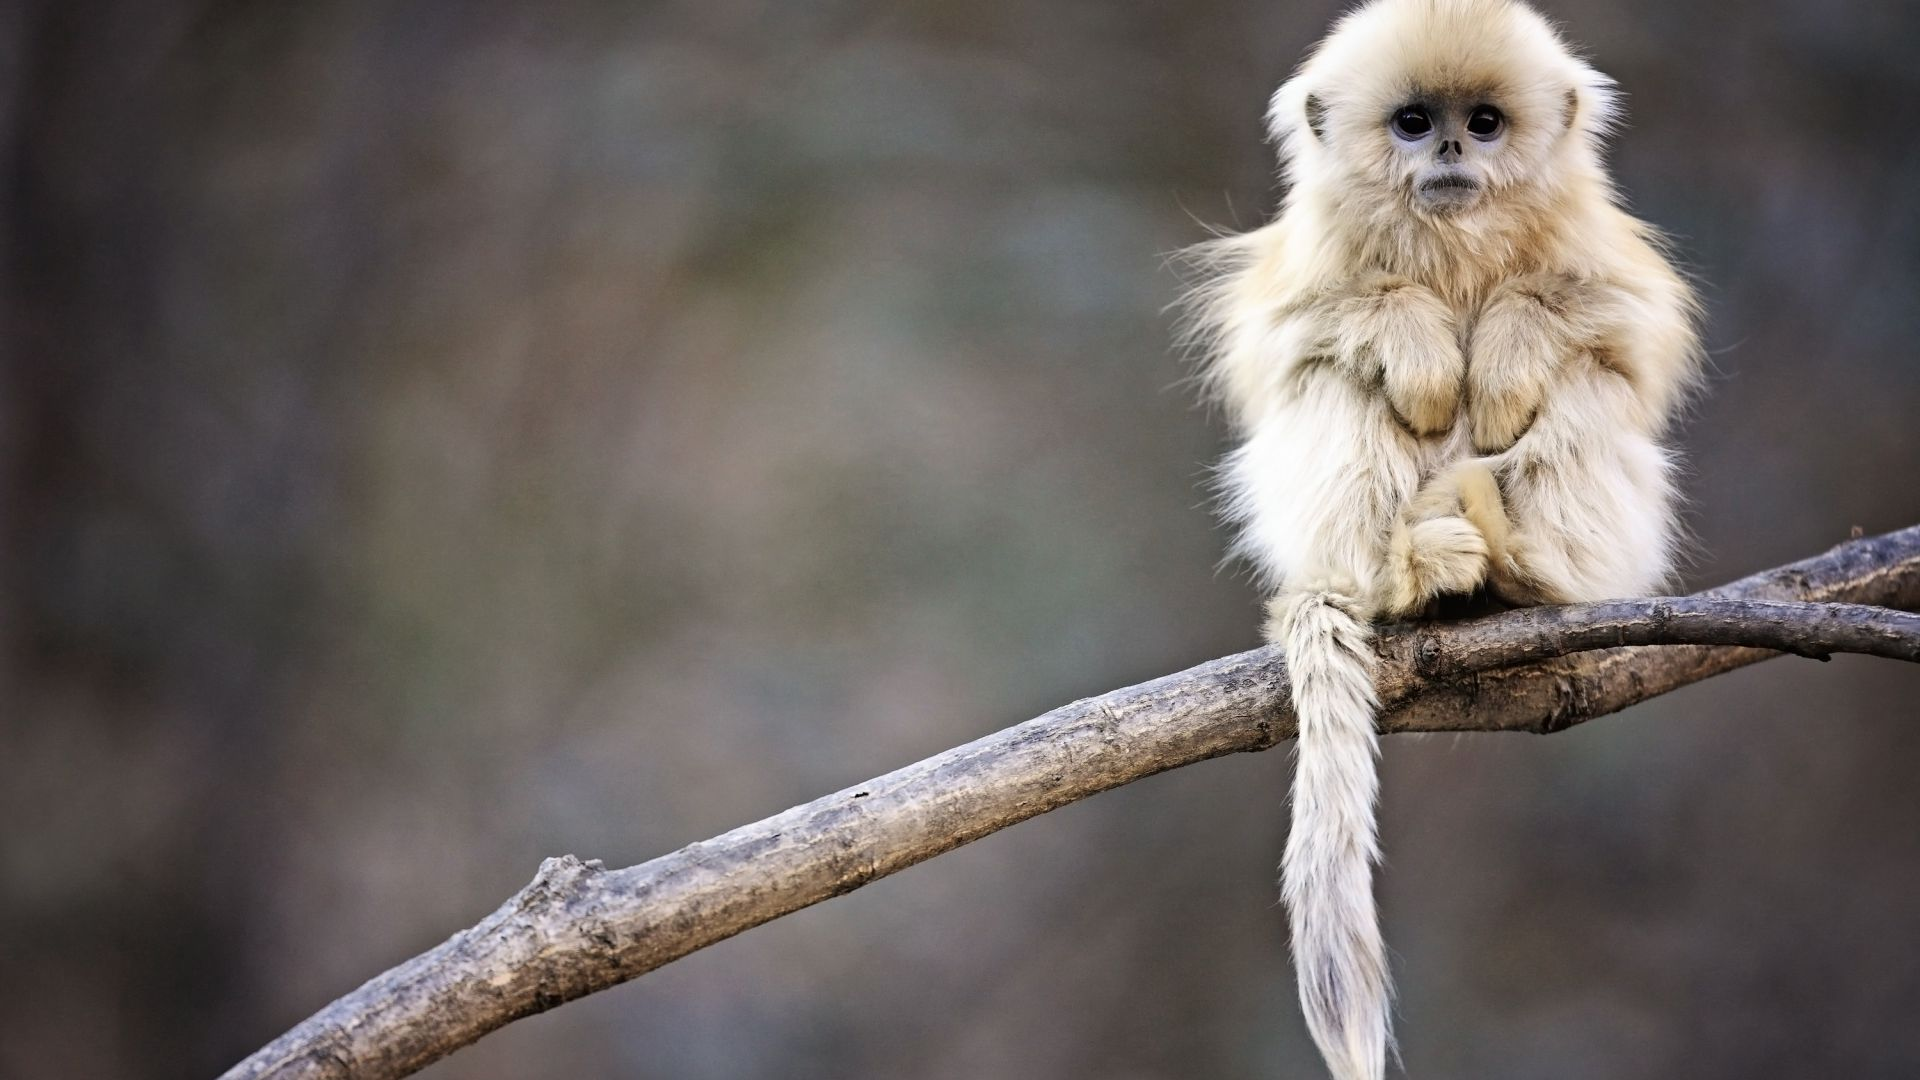 Snub-nosed monkey, monkey, Roxelana, Wolong National Nature Reserve, China, animals (horizontal)